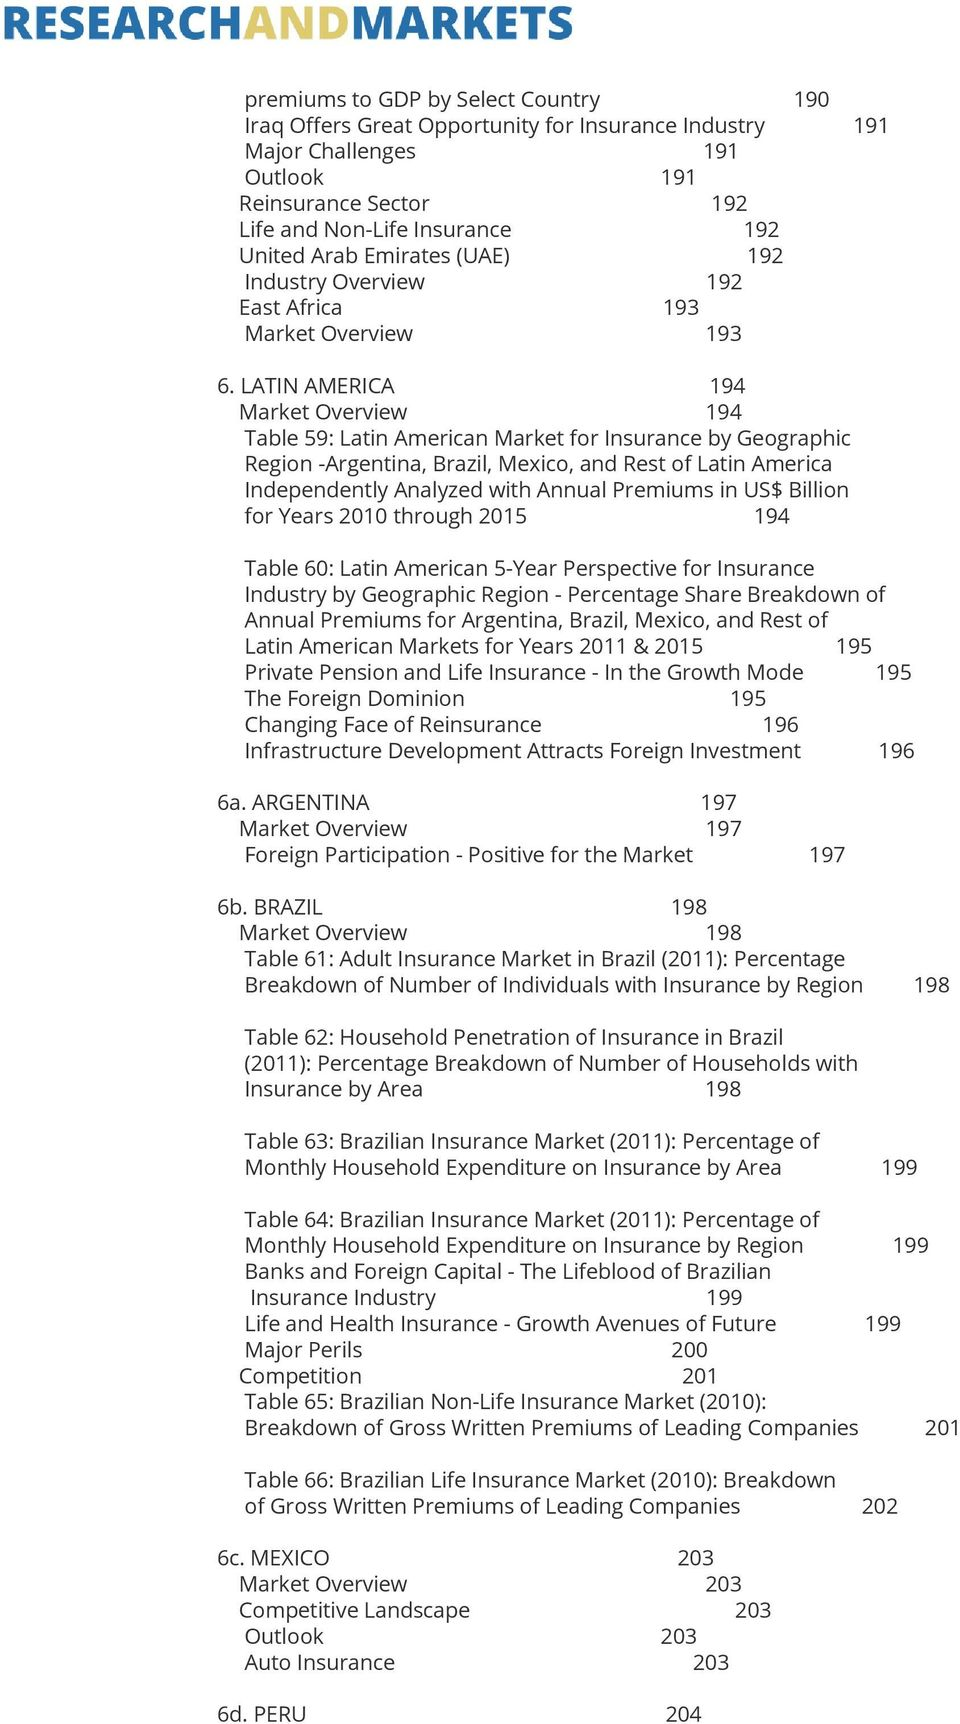 LATIN AMERICA 194 Market Overview 194 Table 59: Latin American Market for Insurance by Geographic Region -Argentina, Brazil, Mexico, and Rest of Latin America Independently Analyzed with Annual